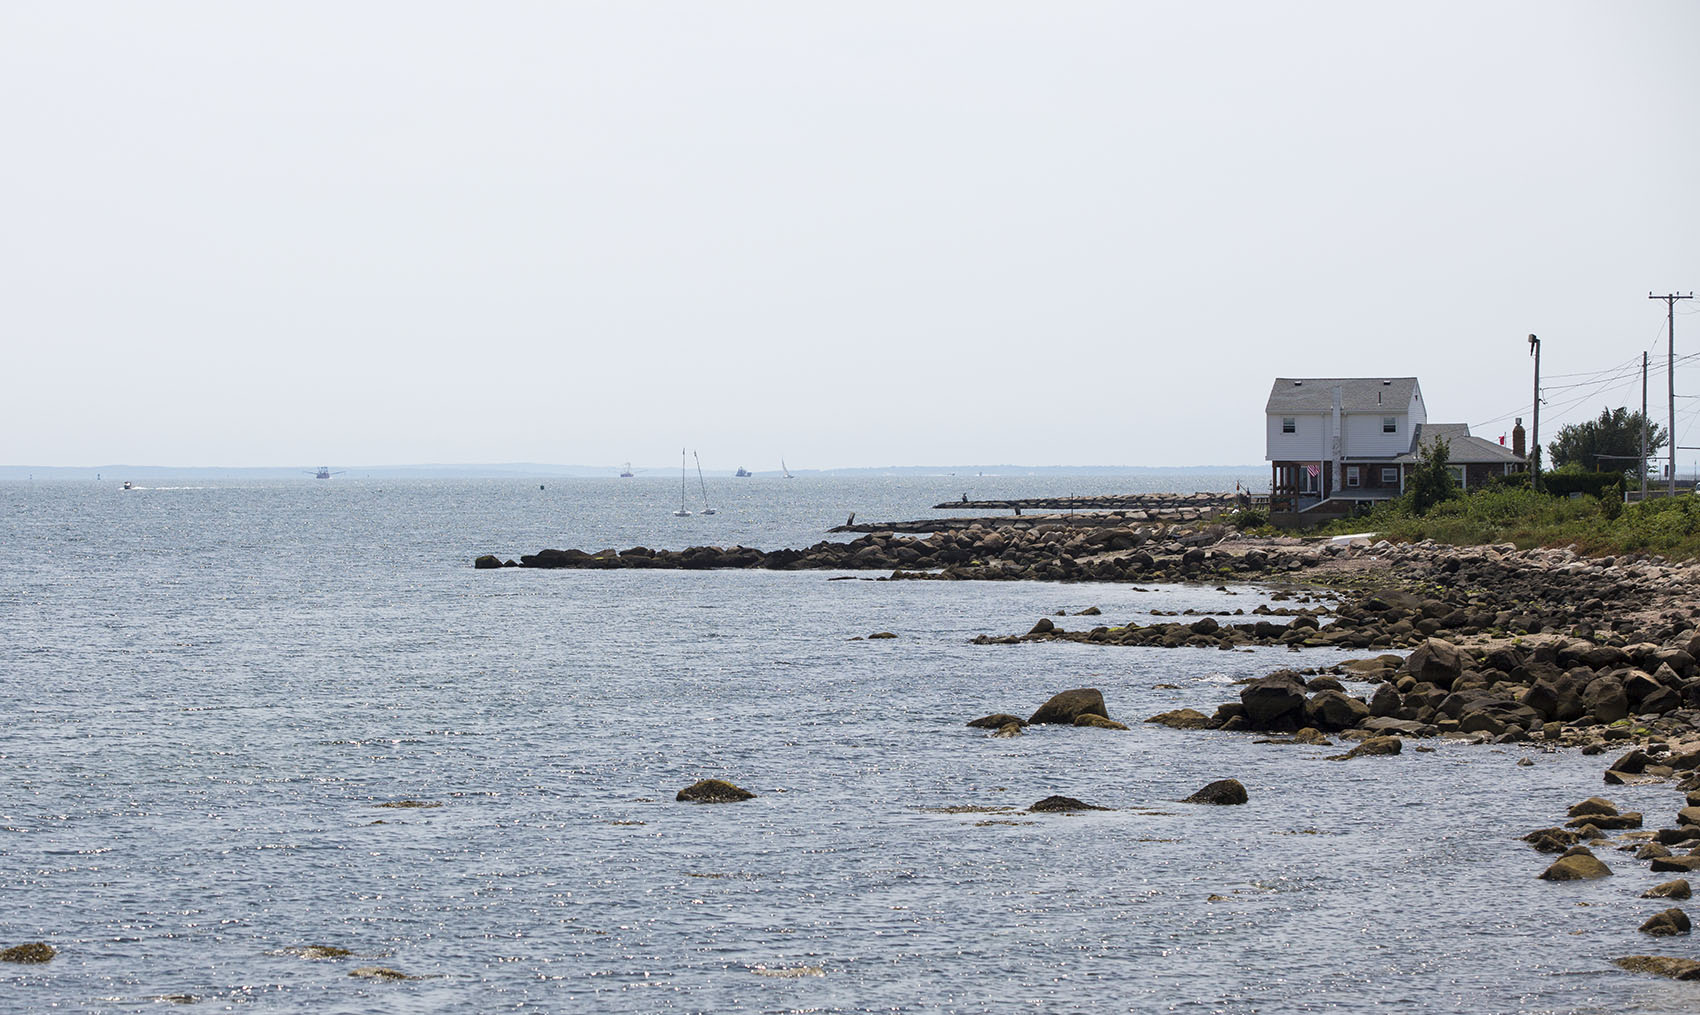 Volunteers and staffers with the Buzzards Bay Coalition have been collecting water quality data for decades in an effort to help the struggling bay. Now they're teaming up with with the Woods Hole Oceanographic Institution to use the data to help fight climate change. Here, a house sits on the rocky north end of East Beach in New Bedford overlooking Buzzards Bay. (Jesse Costa/WBUR)